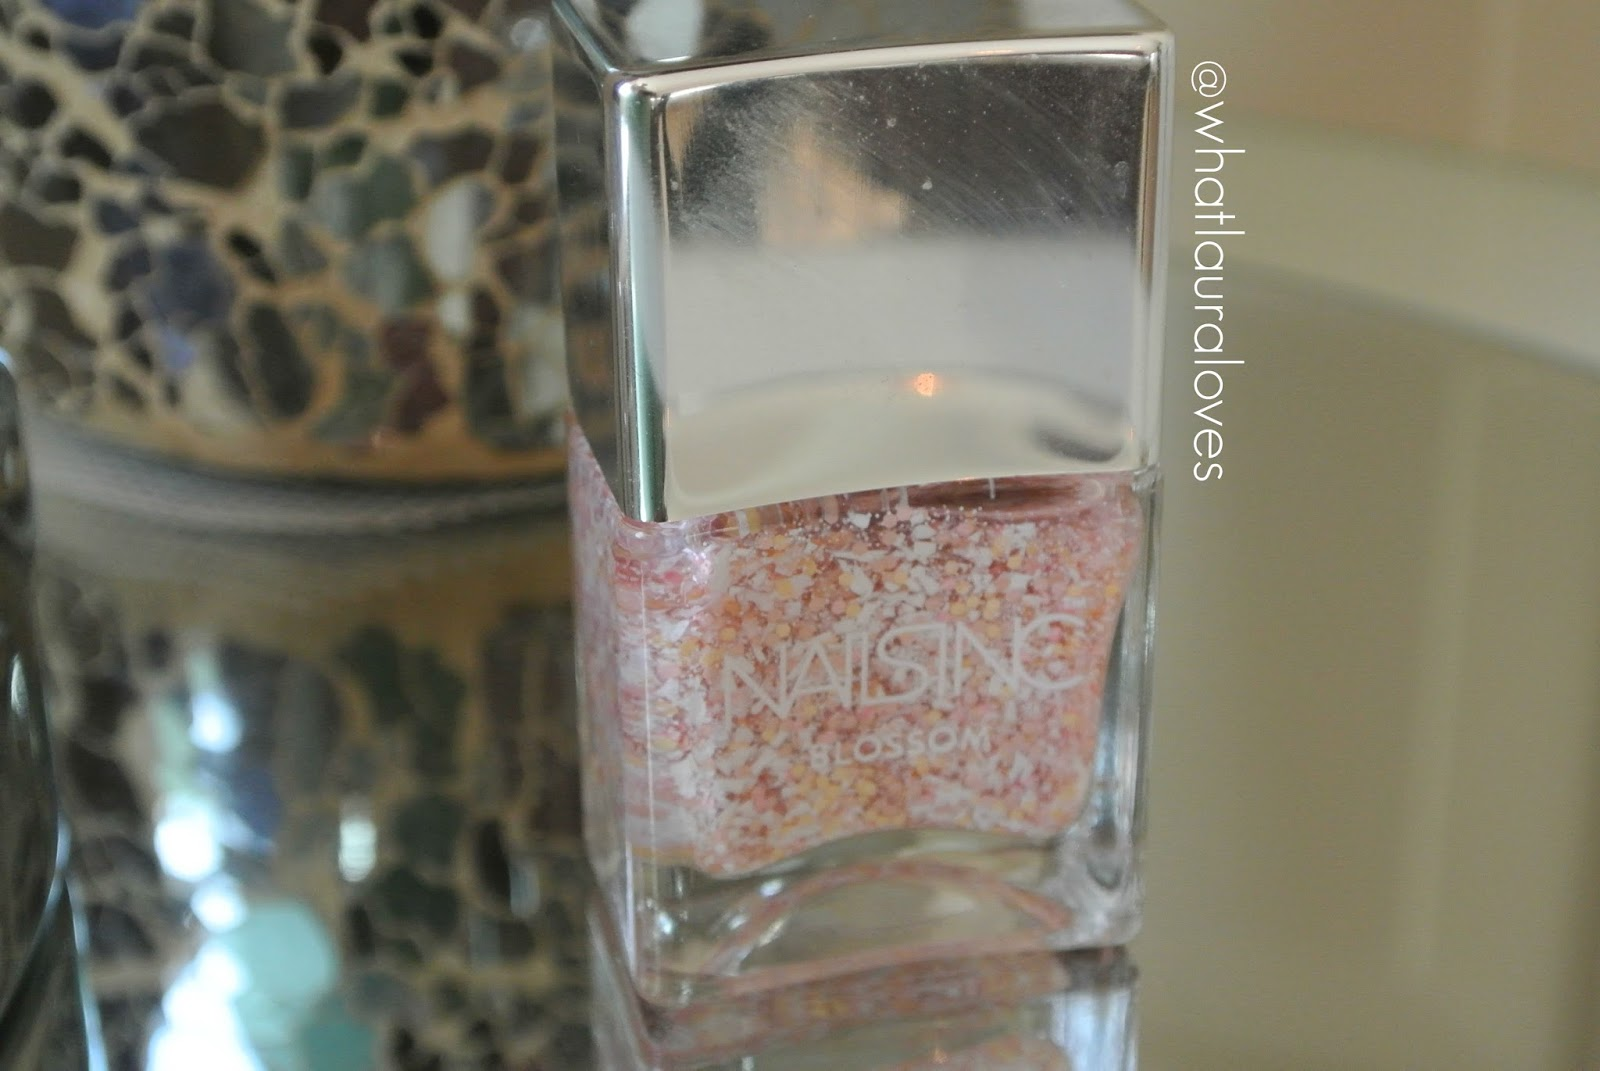 Nails Inc Cherry Garden Street Blossom Collection Limited Edition Review